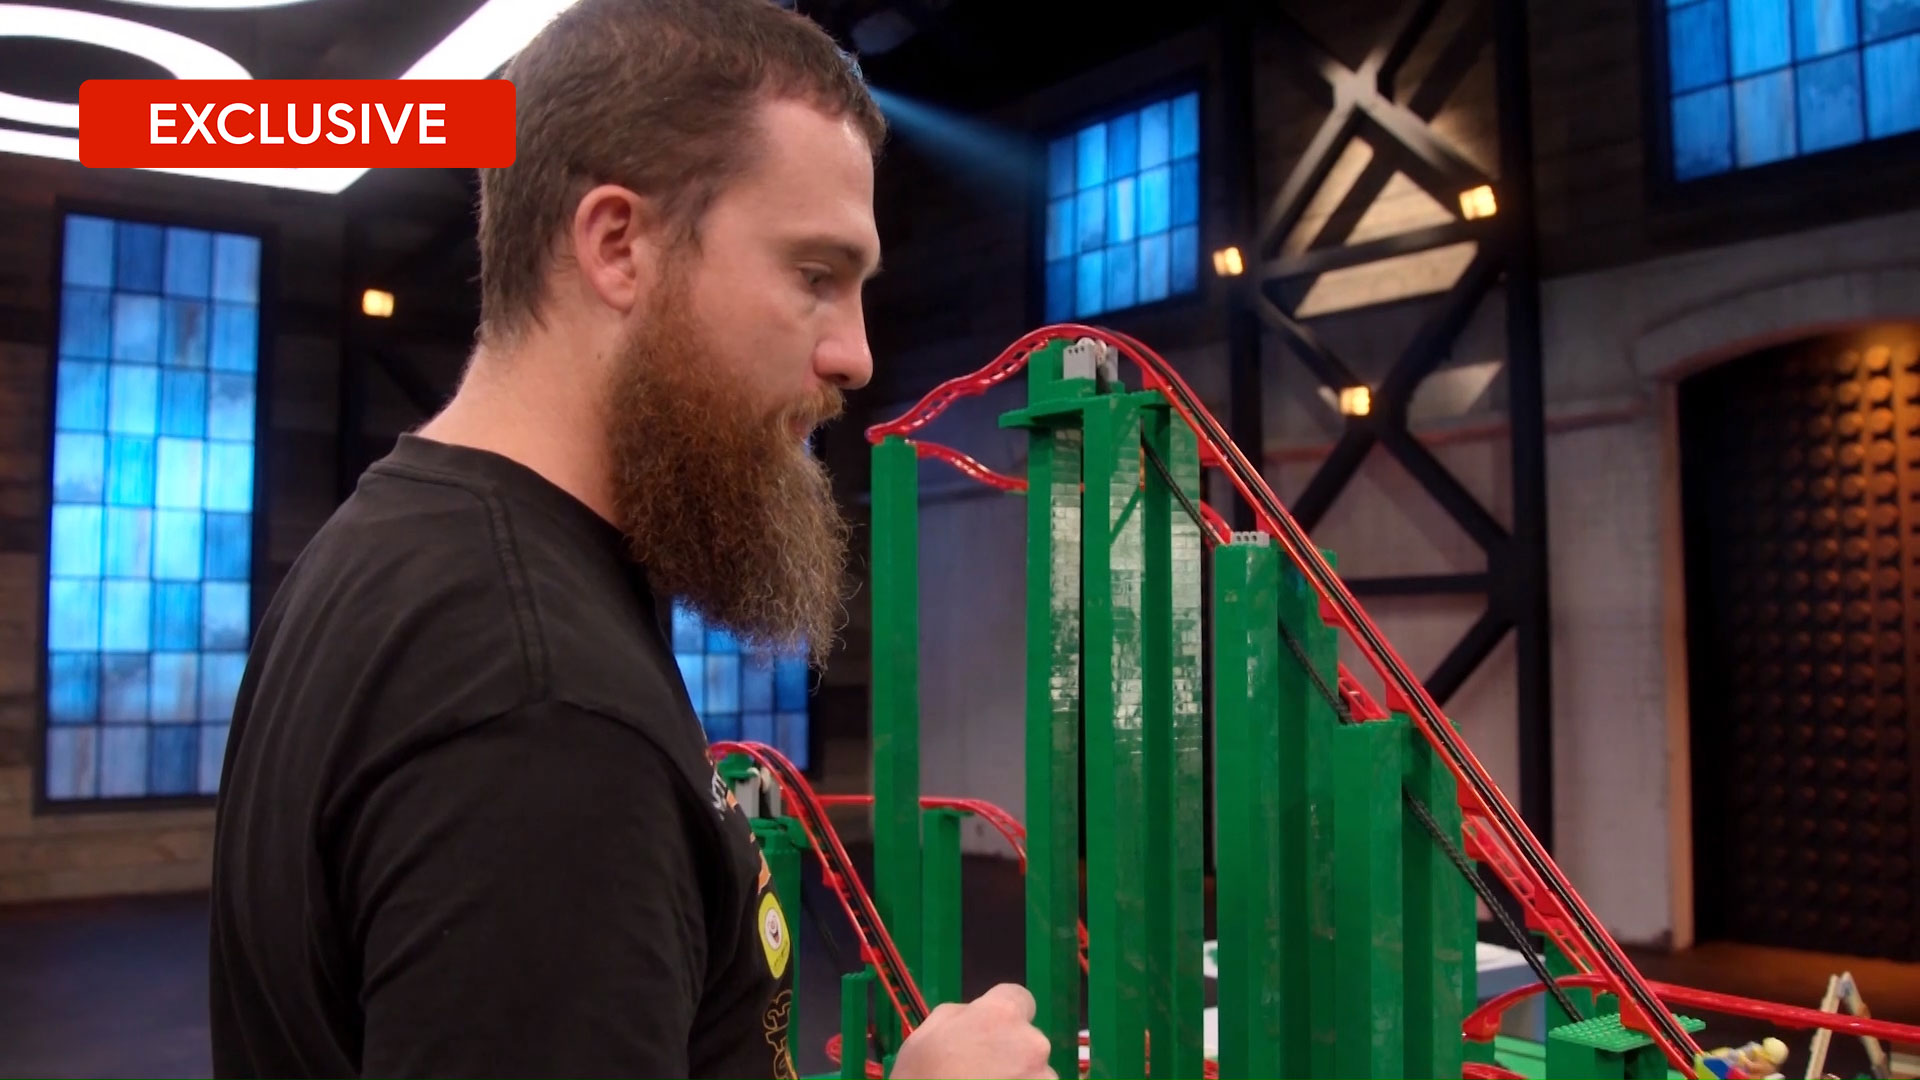 Exclusive: David and G are excited their LEGO roller coaster works